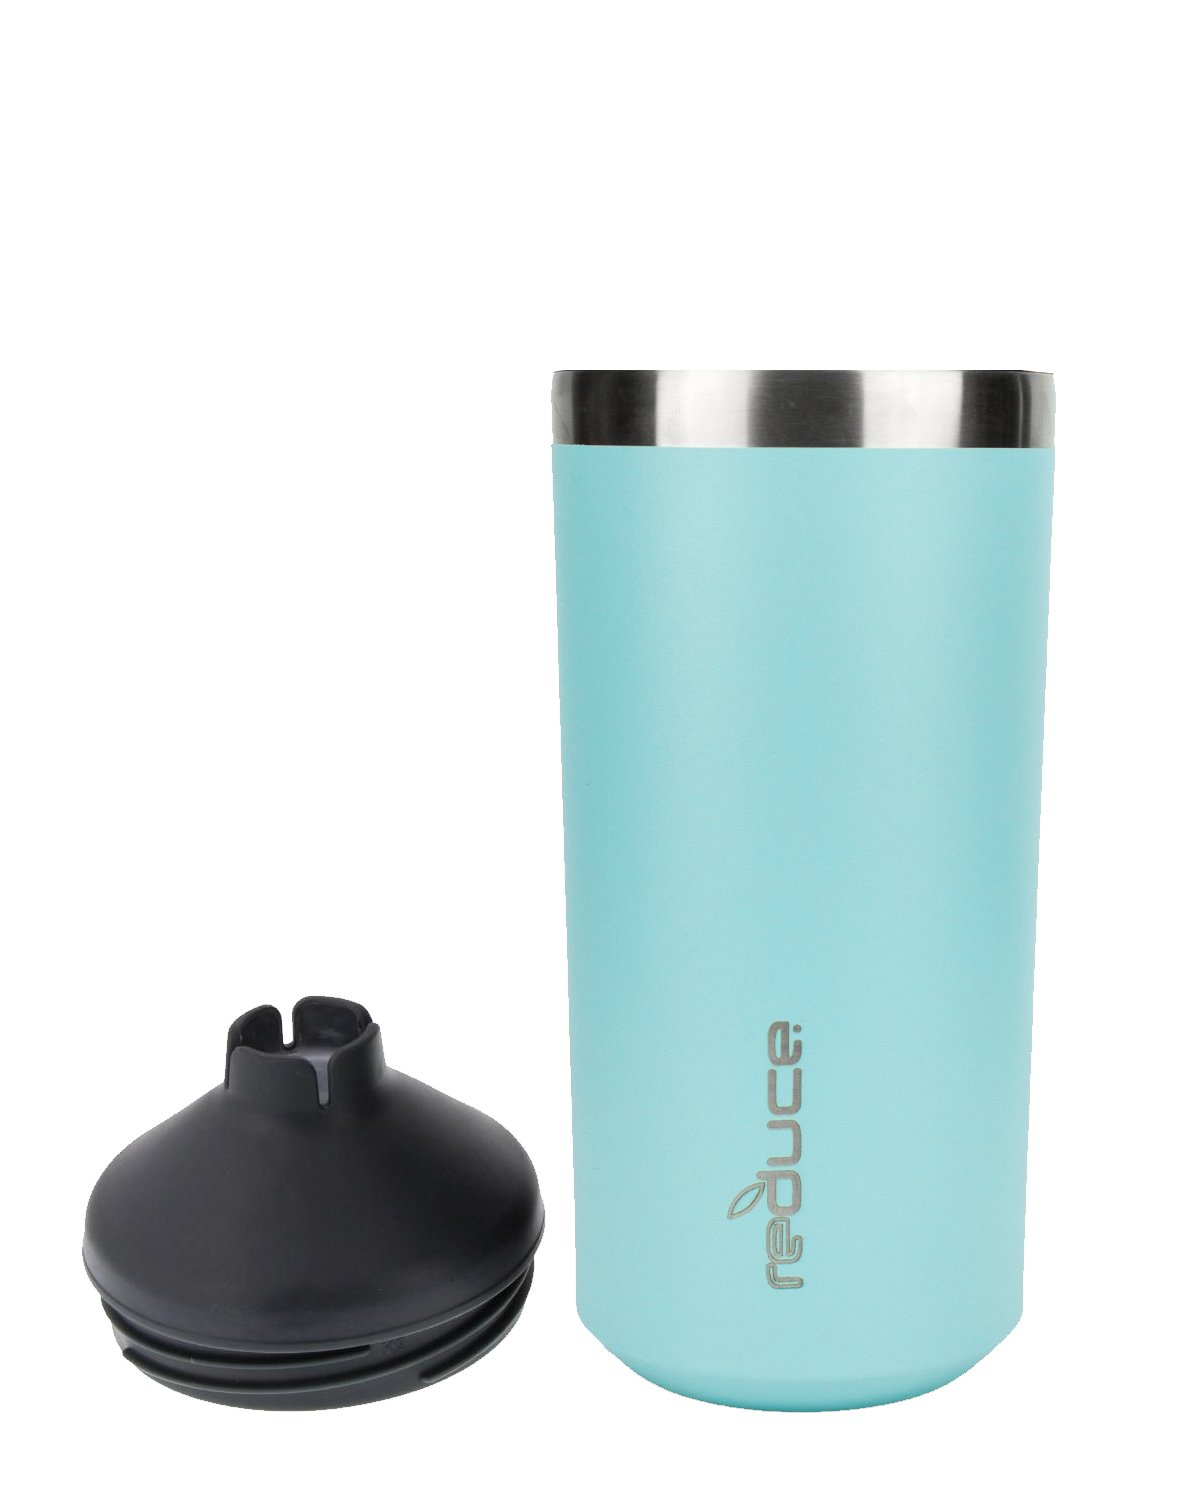 Portable Wine Bottle Cooler by REDUCE - Stainless Steel, Insulated Chiller to Keep Wine at the Perfect Temperature, No Ice Required - Ideal for Outdoor Summer Parties, Fits Most Wine Bottles - Mint by REDUCE (Image #6)